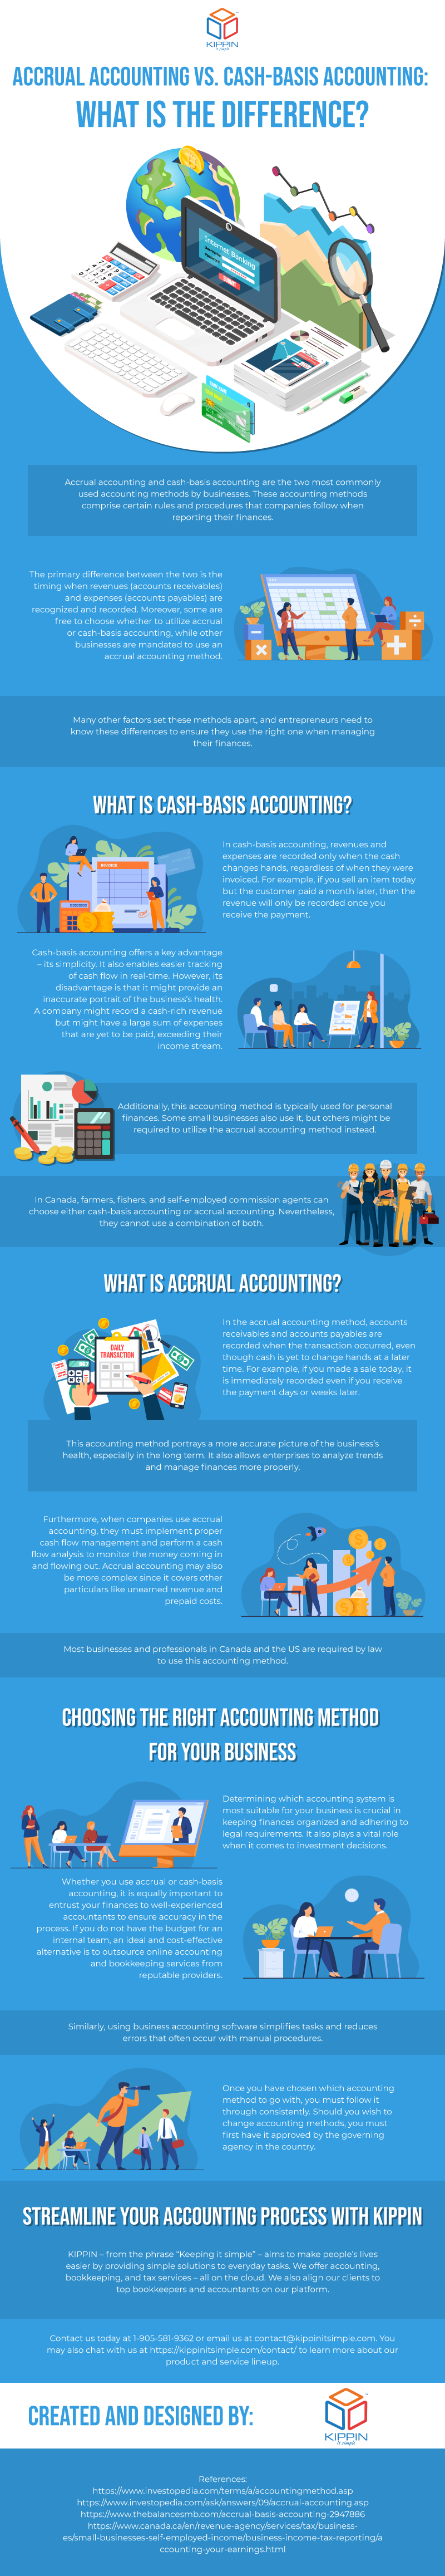 Accrual Accounting vs. Cash Basis Accounting: What is the Difference?